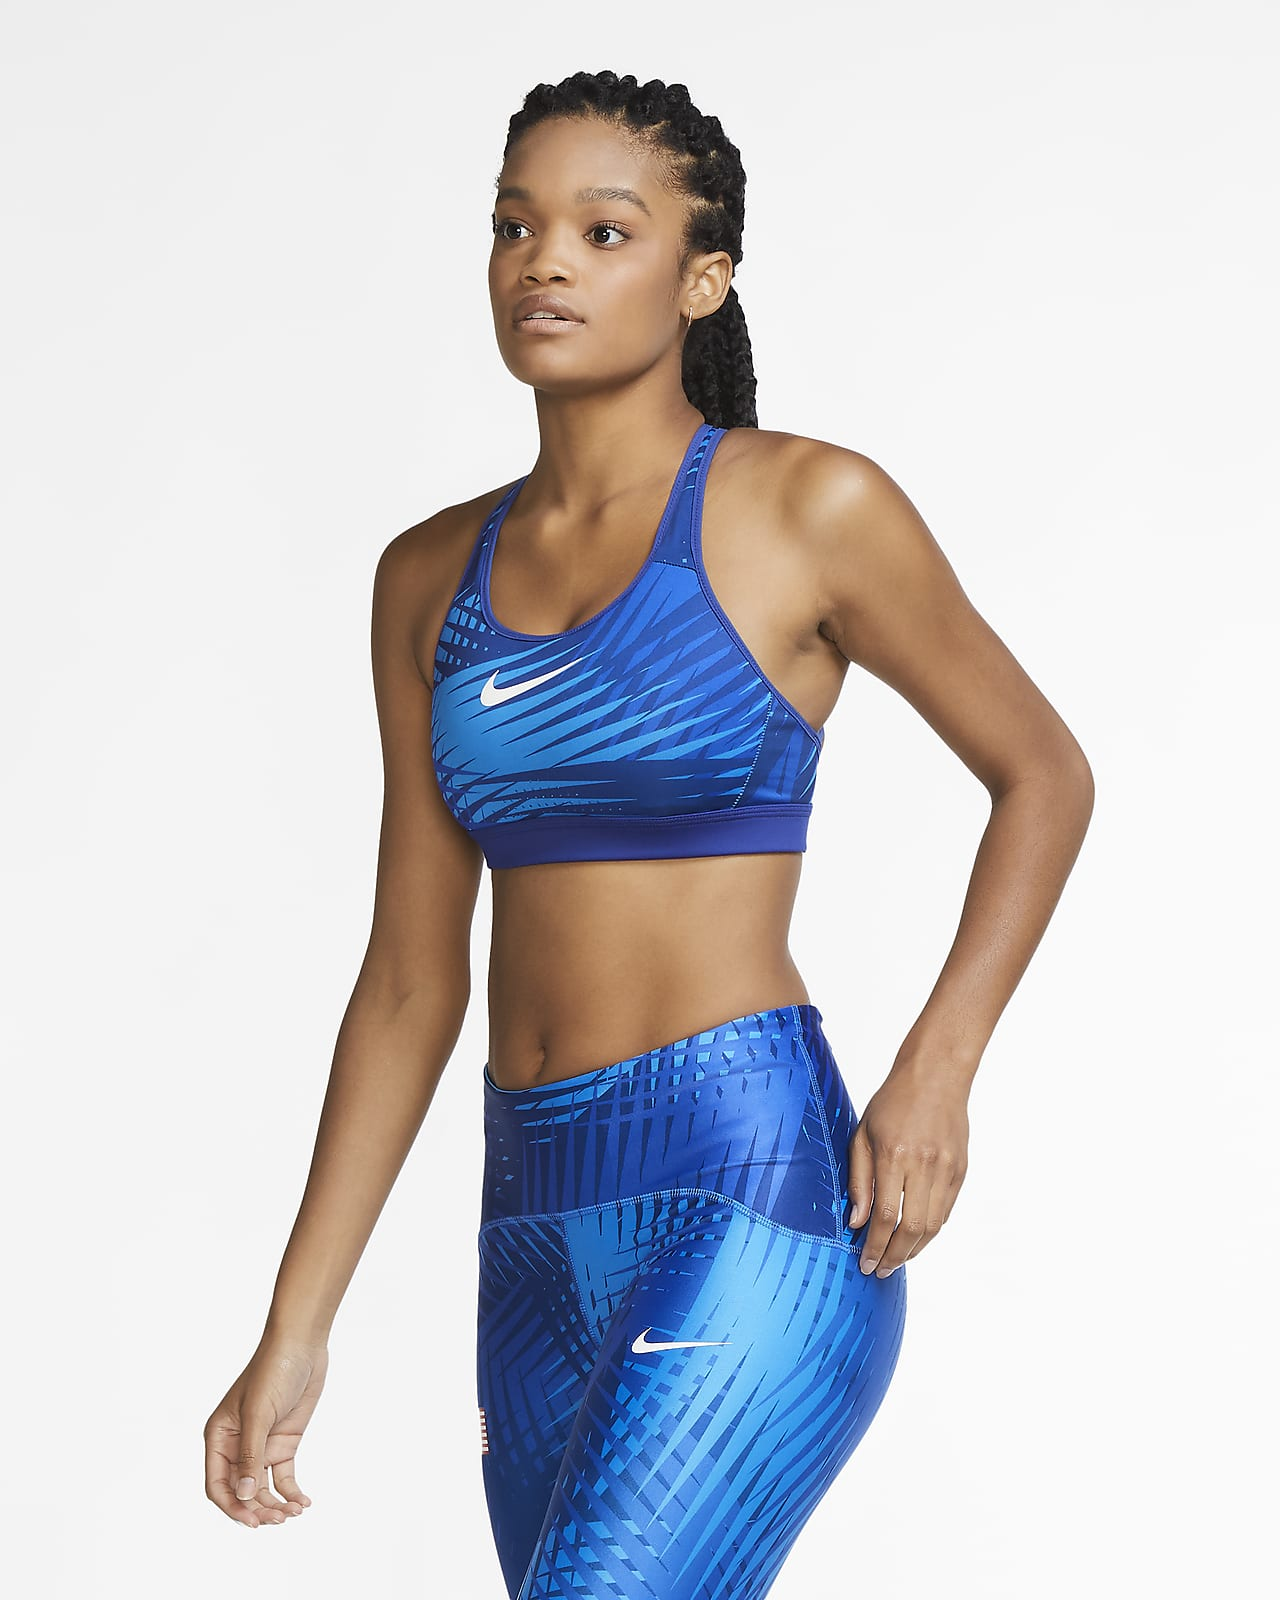 Nike Team USA Impact Women's High-Support Non-Padded Strappy Sports Bra